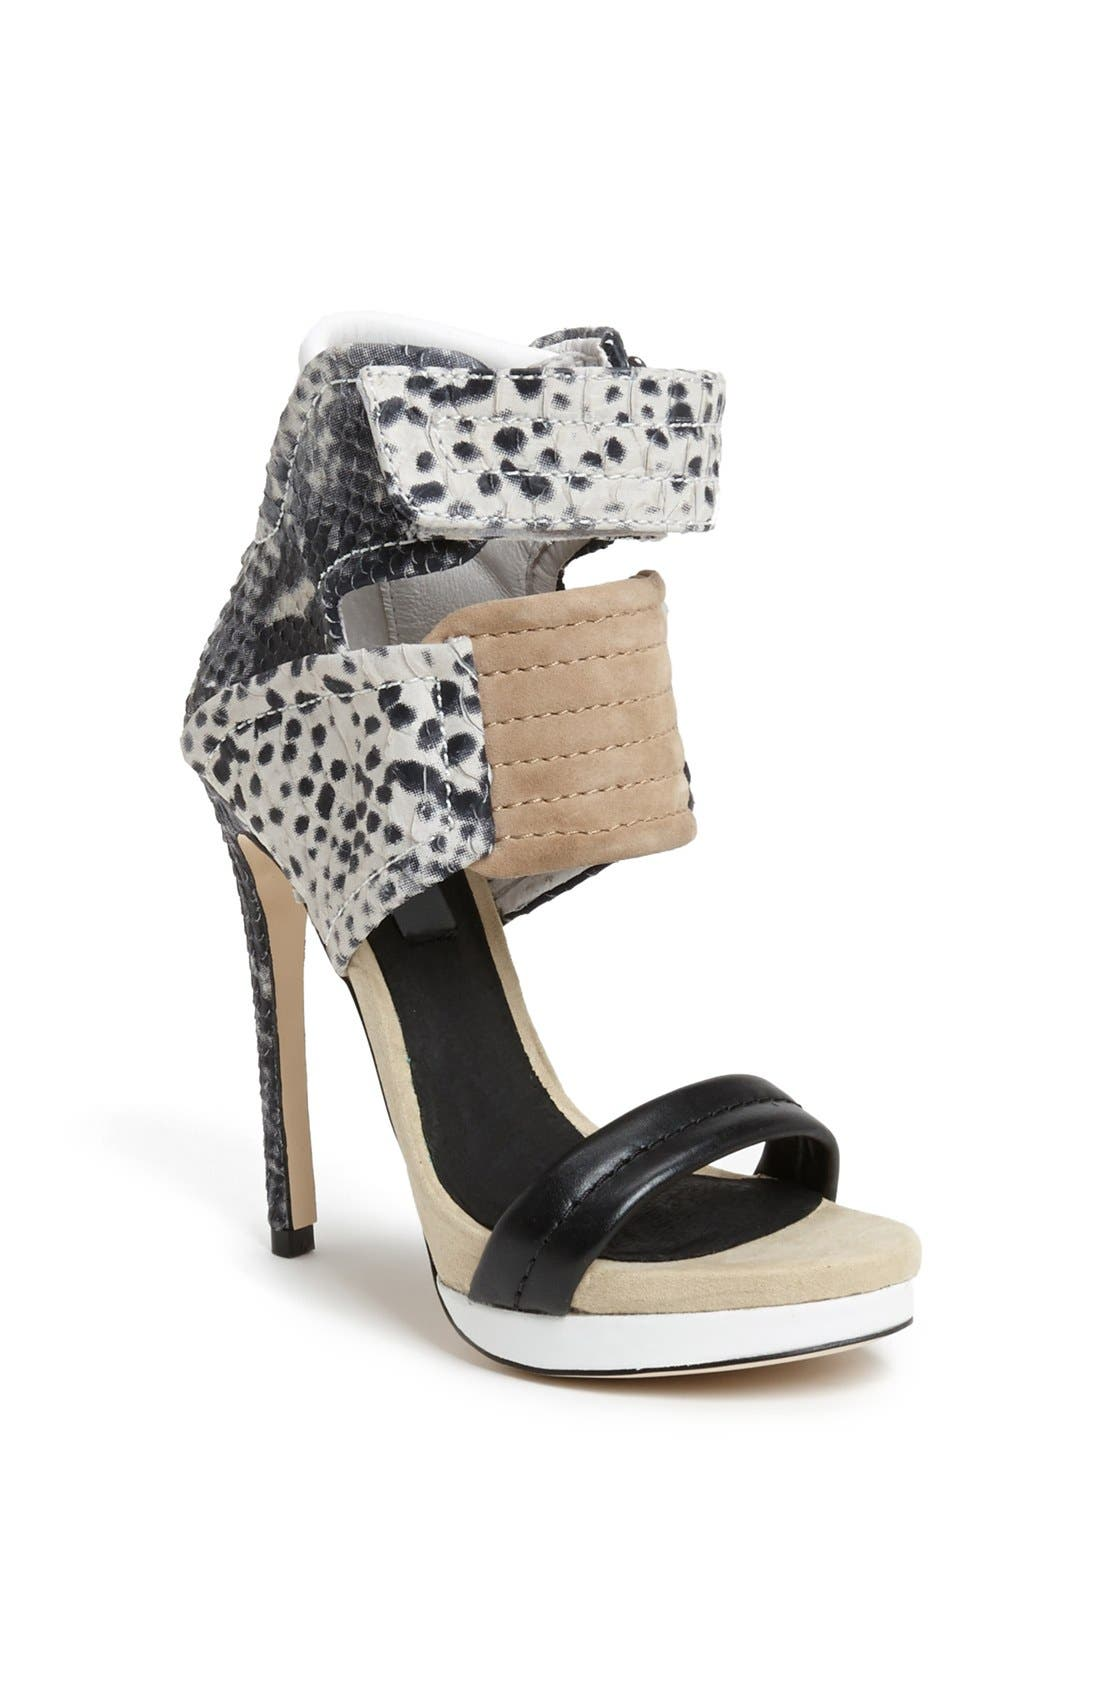 Alternate Image 1 Selected - MIA Limited Edition 'Rocco' Platform Sandal